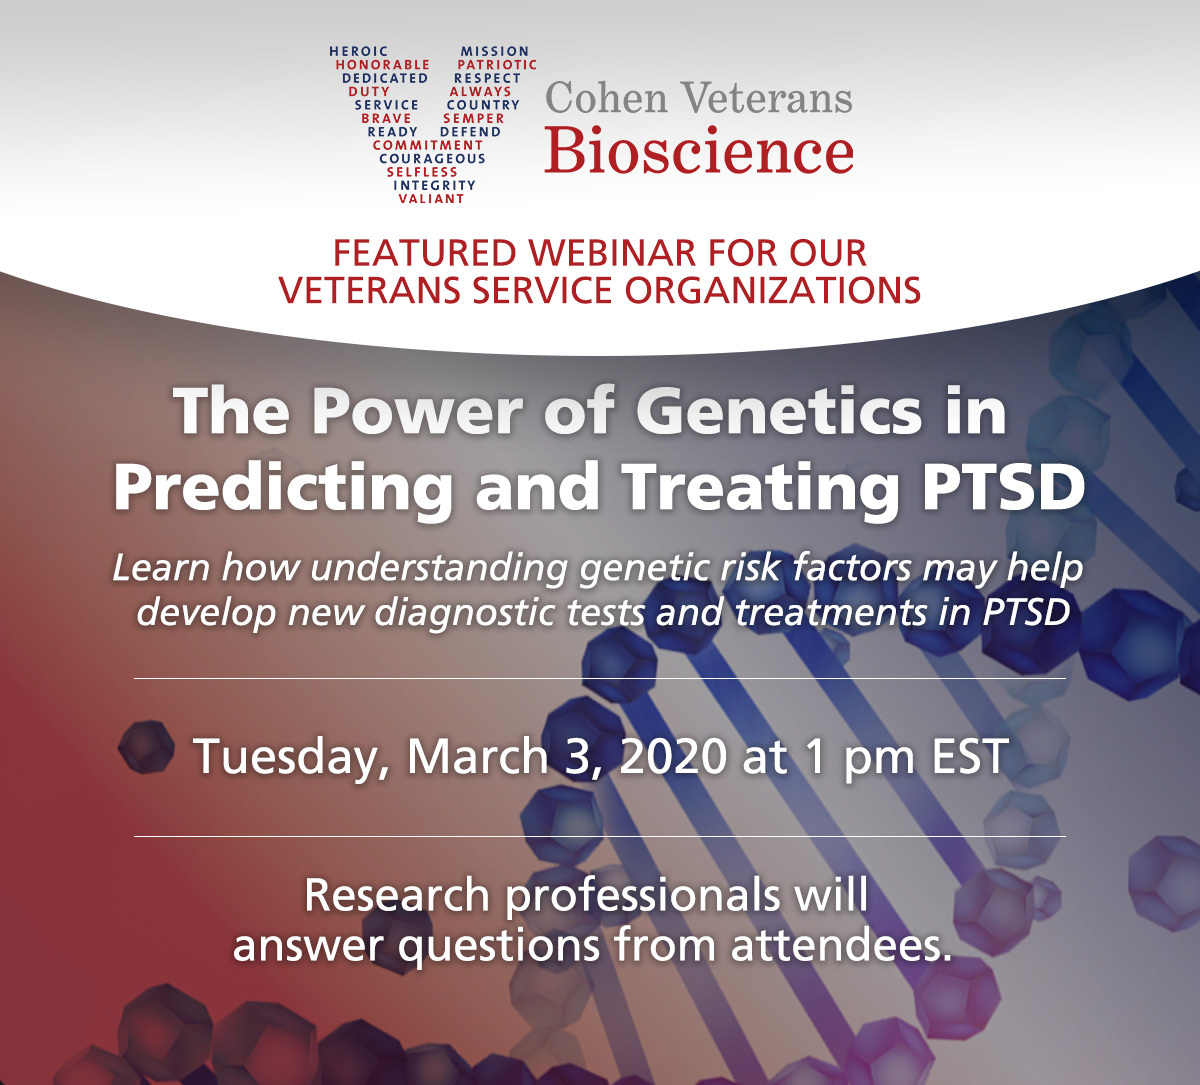 Webinar: The Power of Genetics in Predicting & Treating PTSD